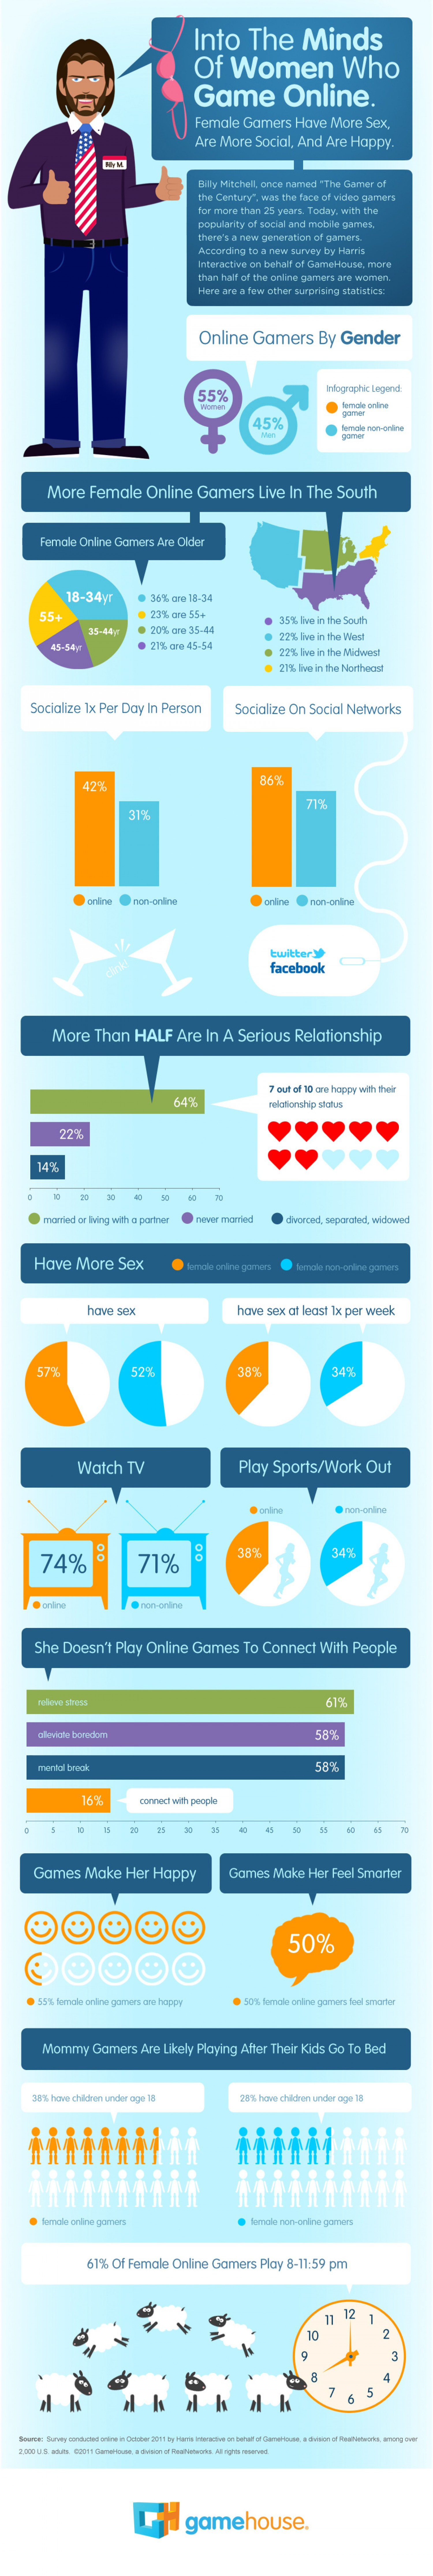 10. Into the Minds of Women who Game online